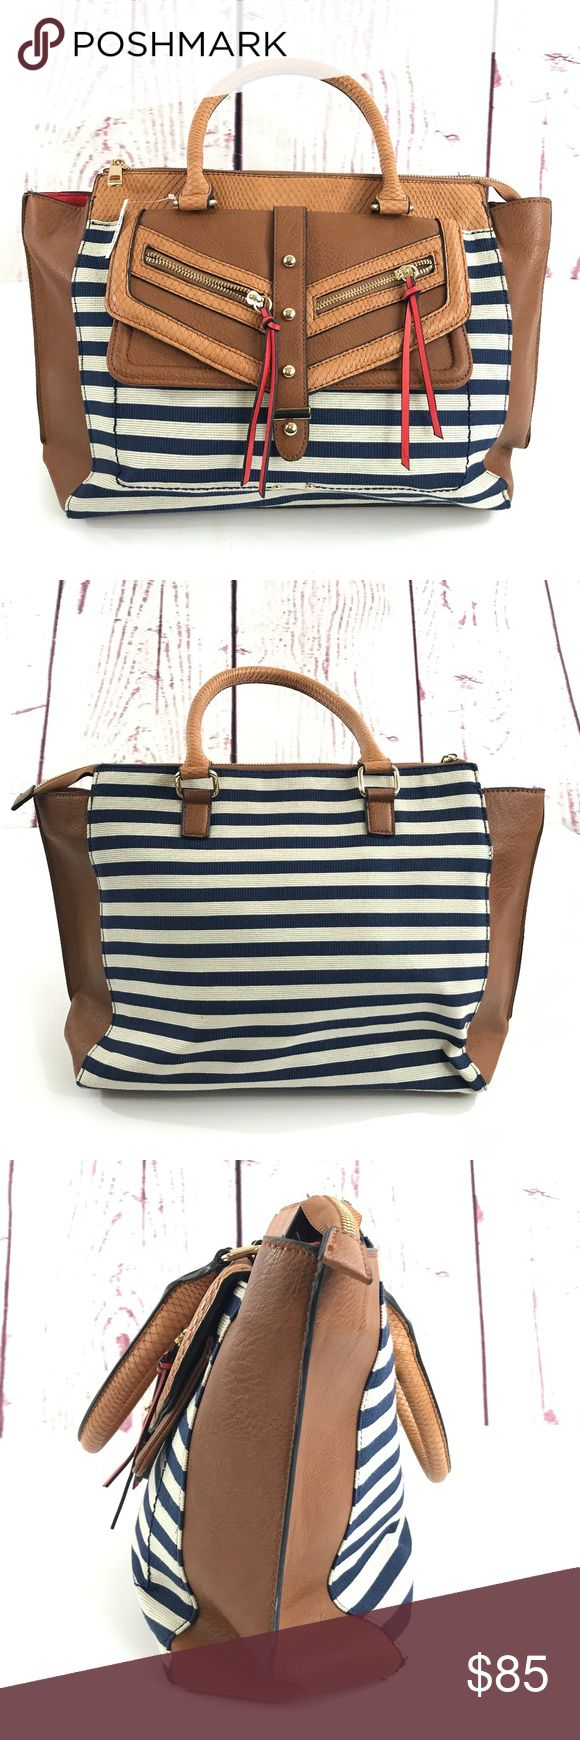 "Aldo Canvas Striped Nautical Tote Bag Length: 18"" Width:5.5"" Height: 11"" Strap Drop: 7""  Please feel free to ask any questions you may have.  We value our customers and respond to all questions fast!  Always fast, same or next day shipping.  We always welcome offers:) ALDO Bags Totes"